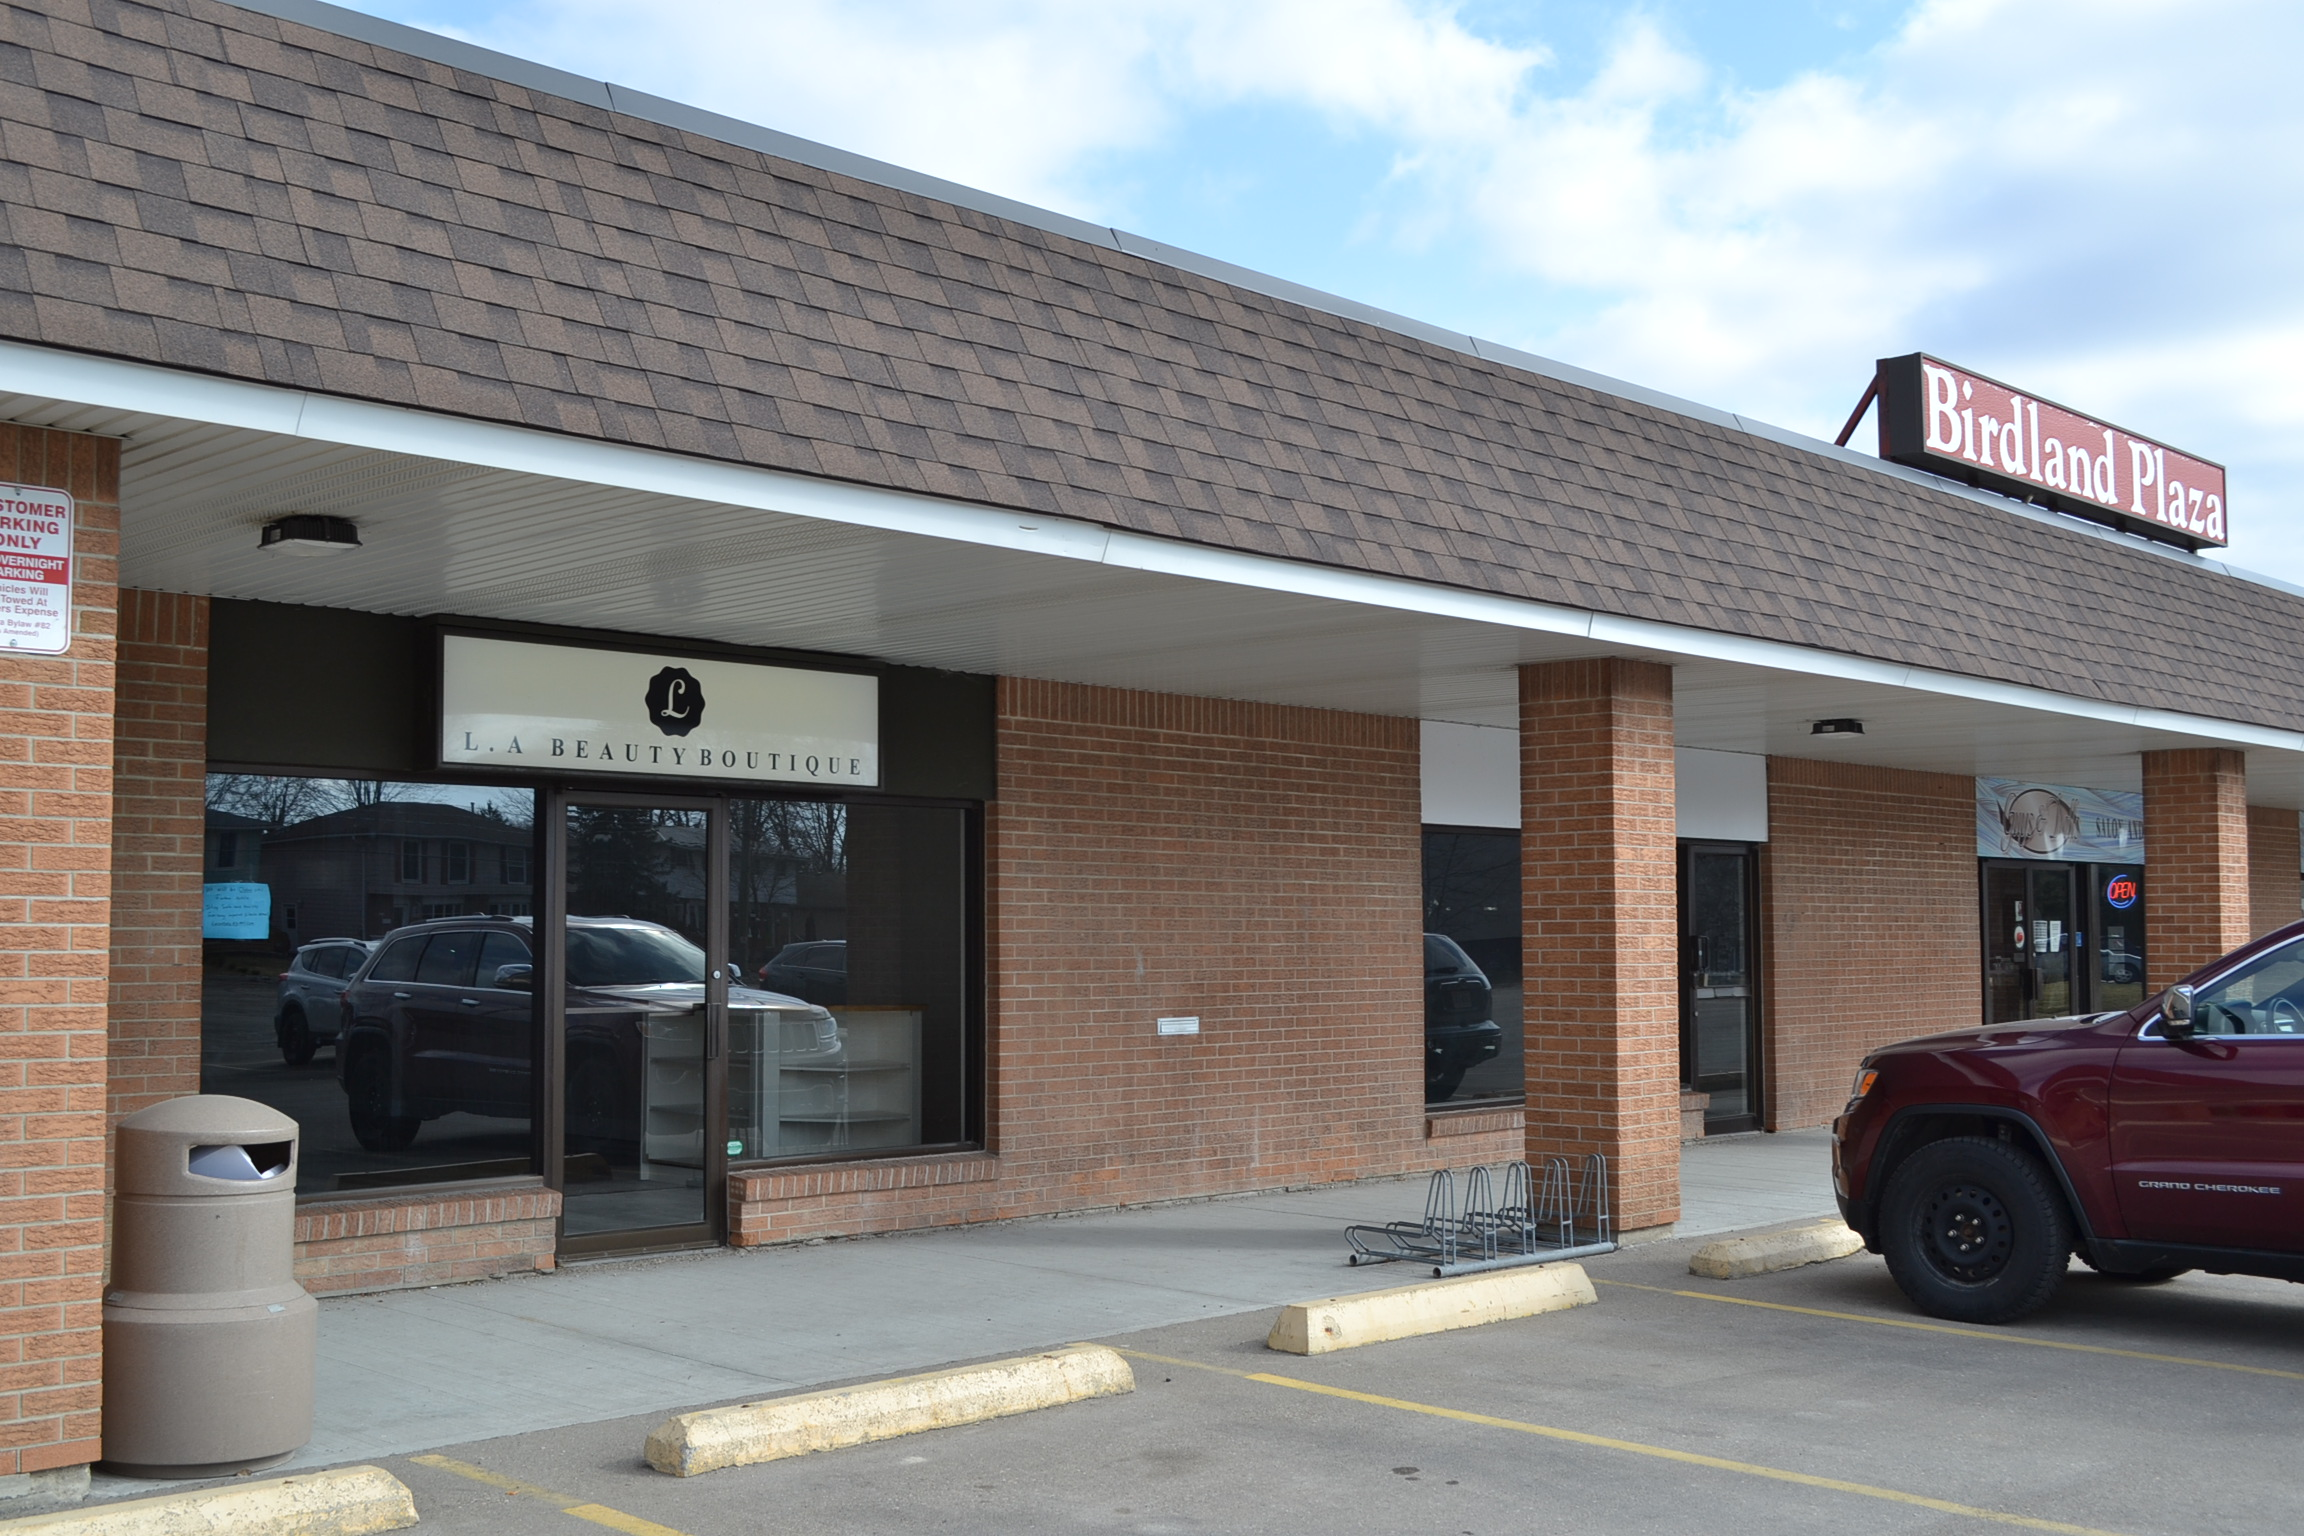 Picture of a property/building at 112 Oriole Pkwy, Birdland Plaza Unit #5.